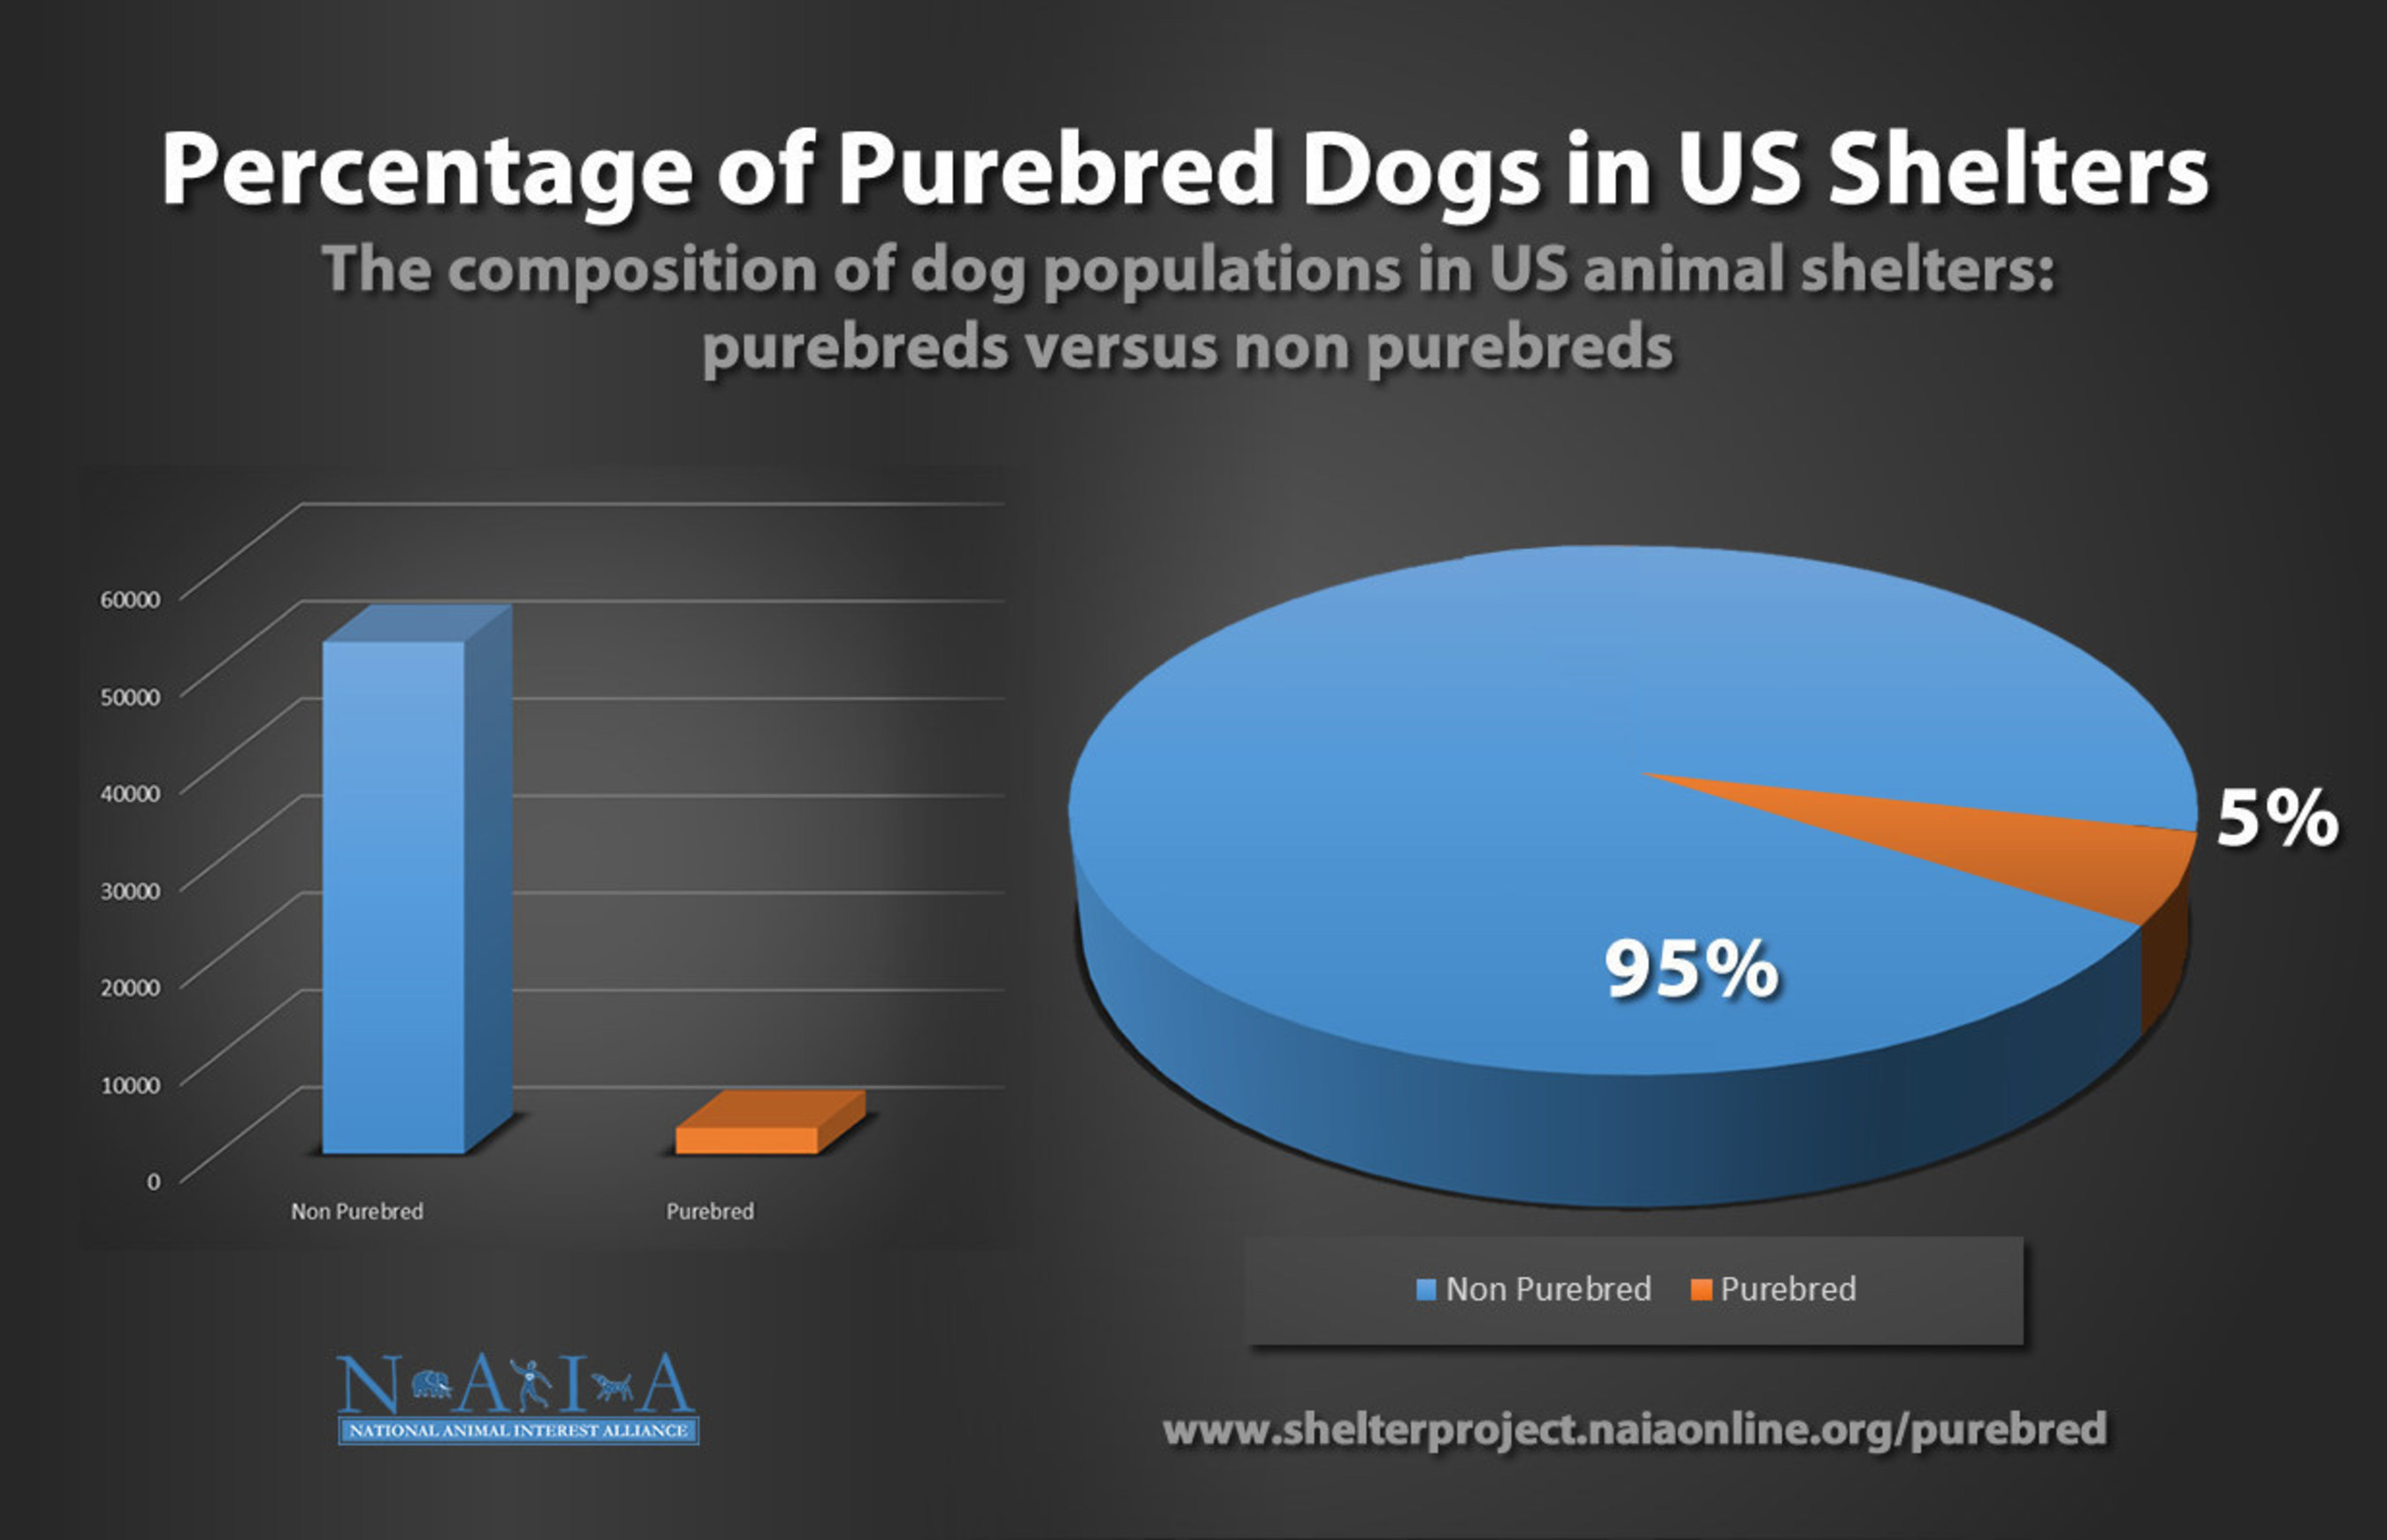 Percentage of Purebred Dogs in US Shelters